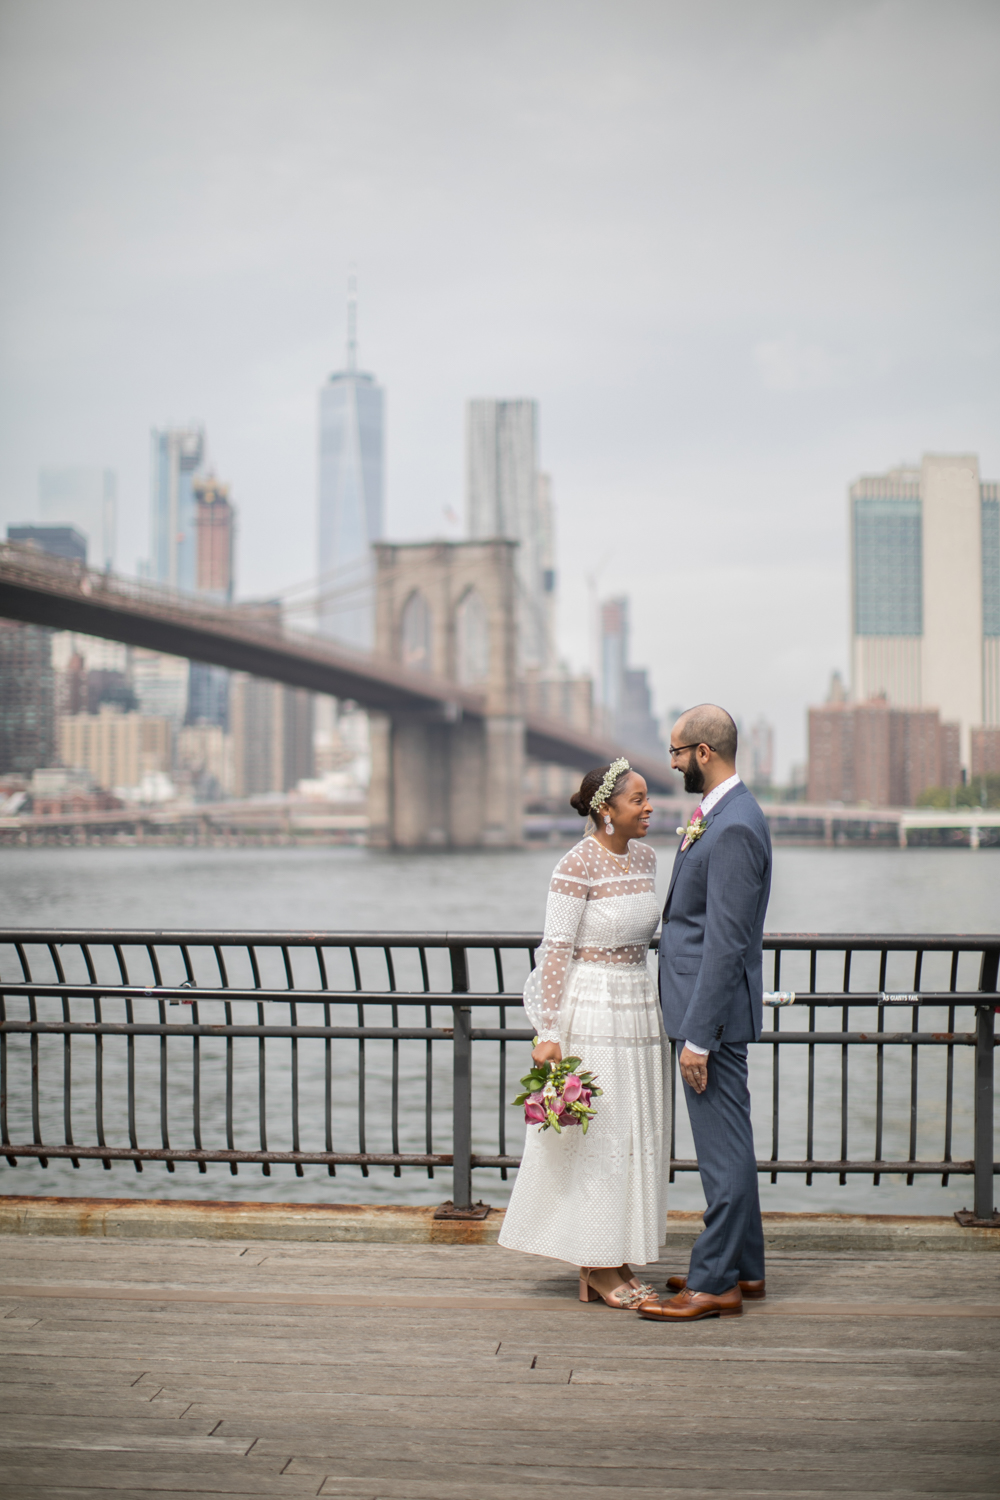 A bride and groom pose for a portrait in Brooklyn Bridge Park.